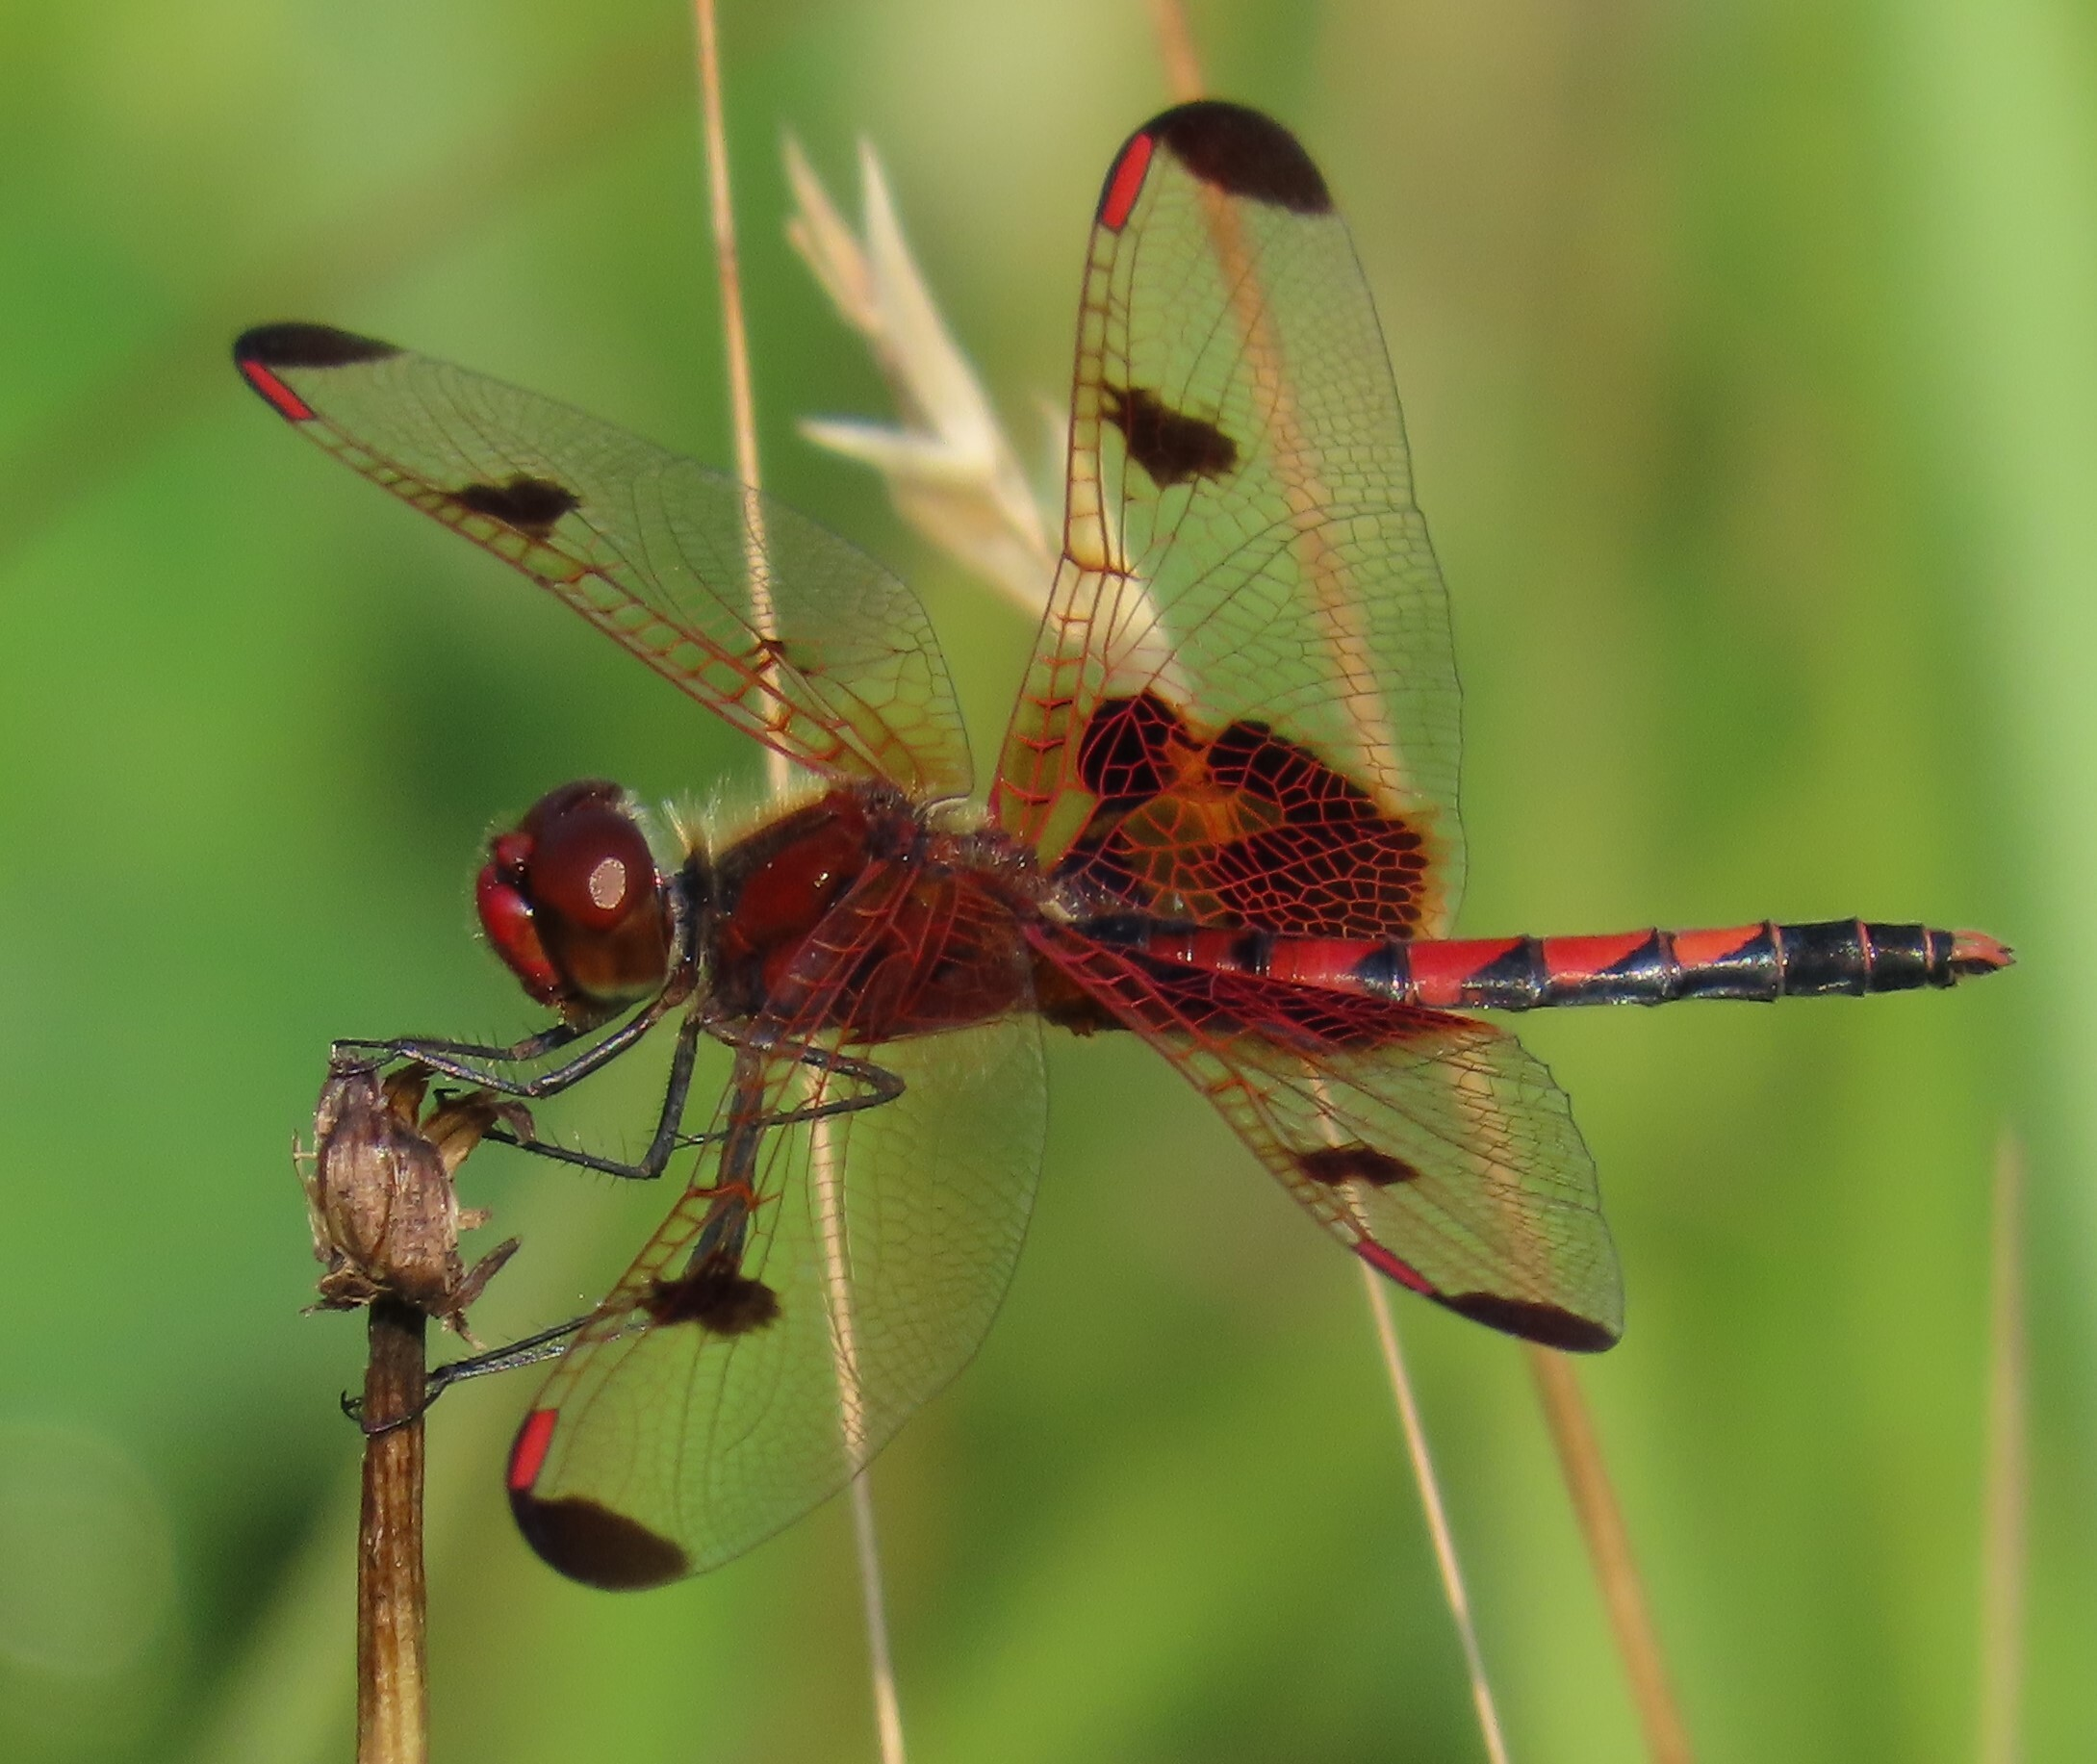 The Calico Pennant was found perching on dead plant stems in a field near the Oconaluftee Job Corps Center on the North Carolina side of the park. Photo courtesy of Nora Murdock of GRISLD.